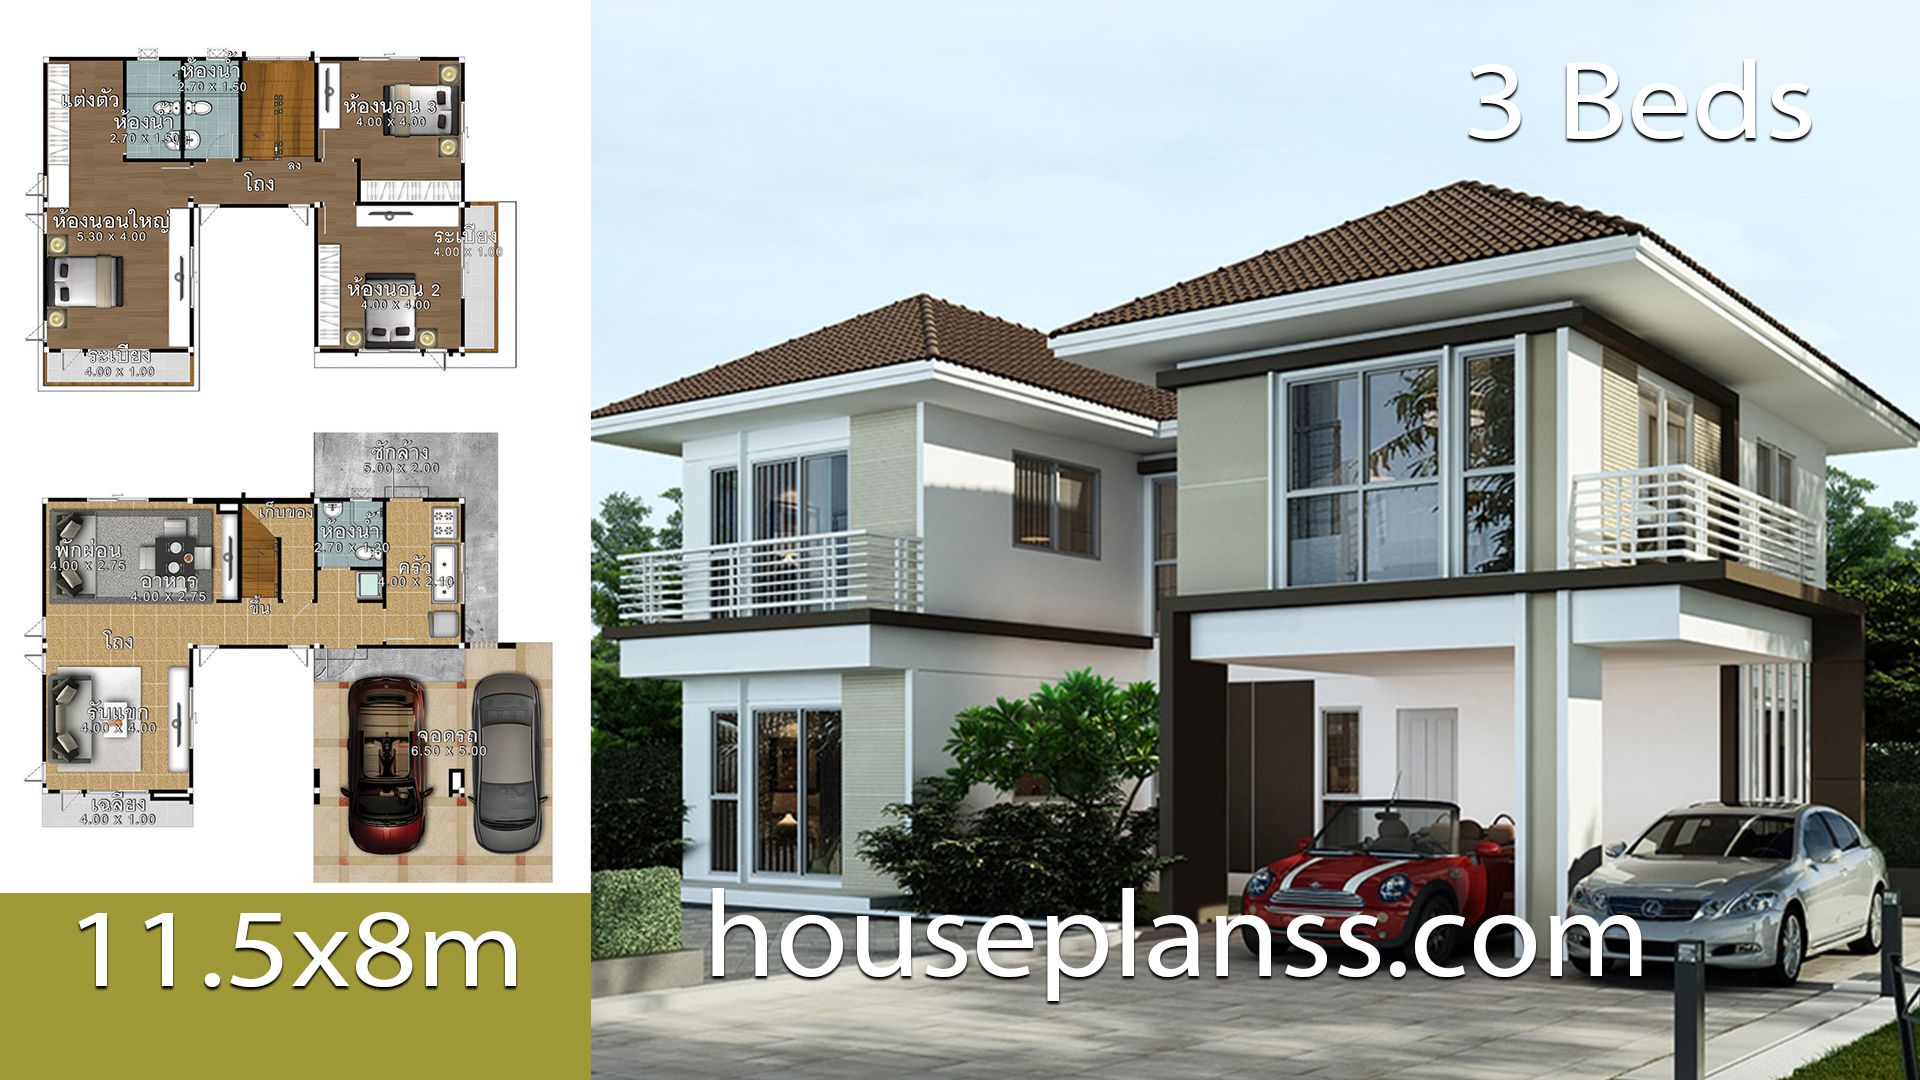 House Plans Idea 11 5x8 With 3 Bedrooms House Plans S Beautiful House Plans Home Design Plans Bedroom House Plans